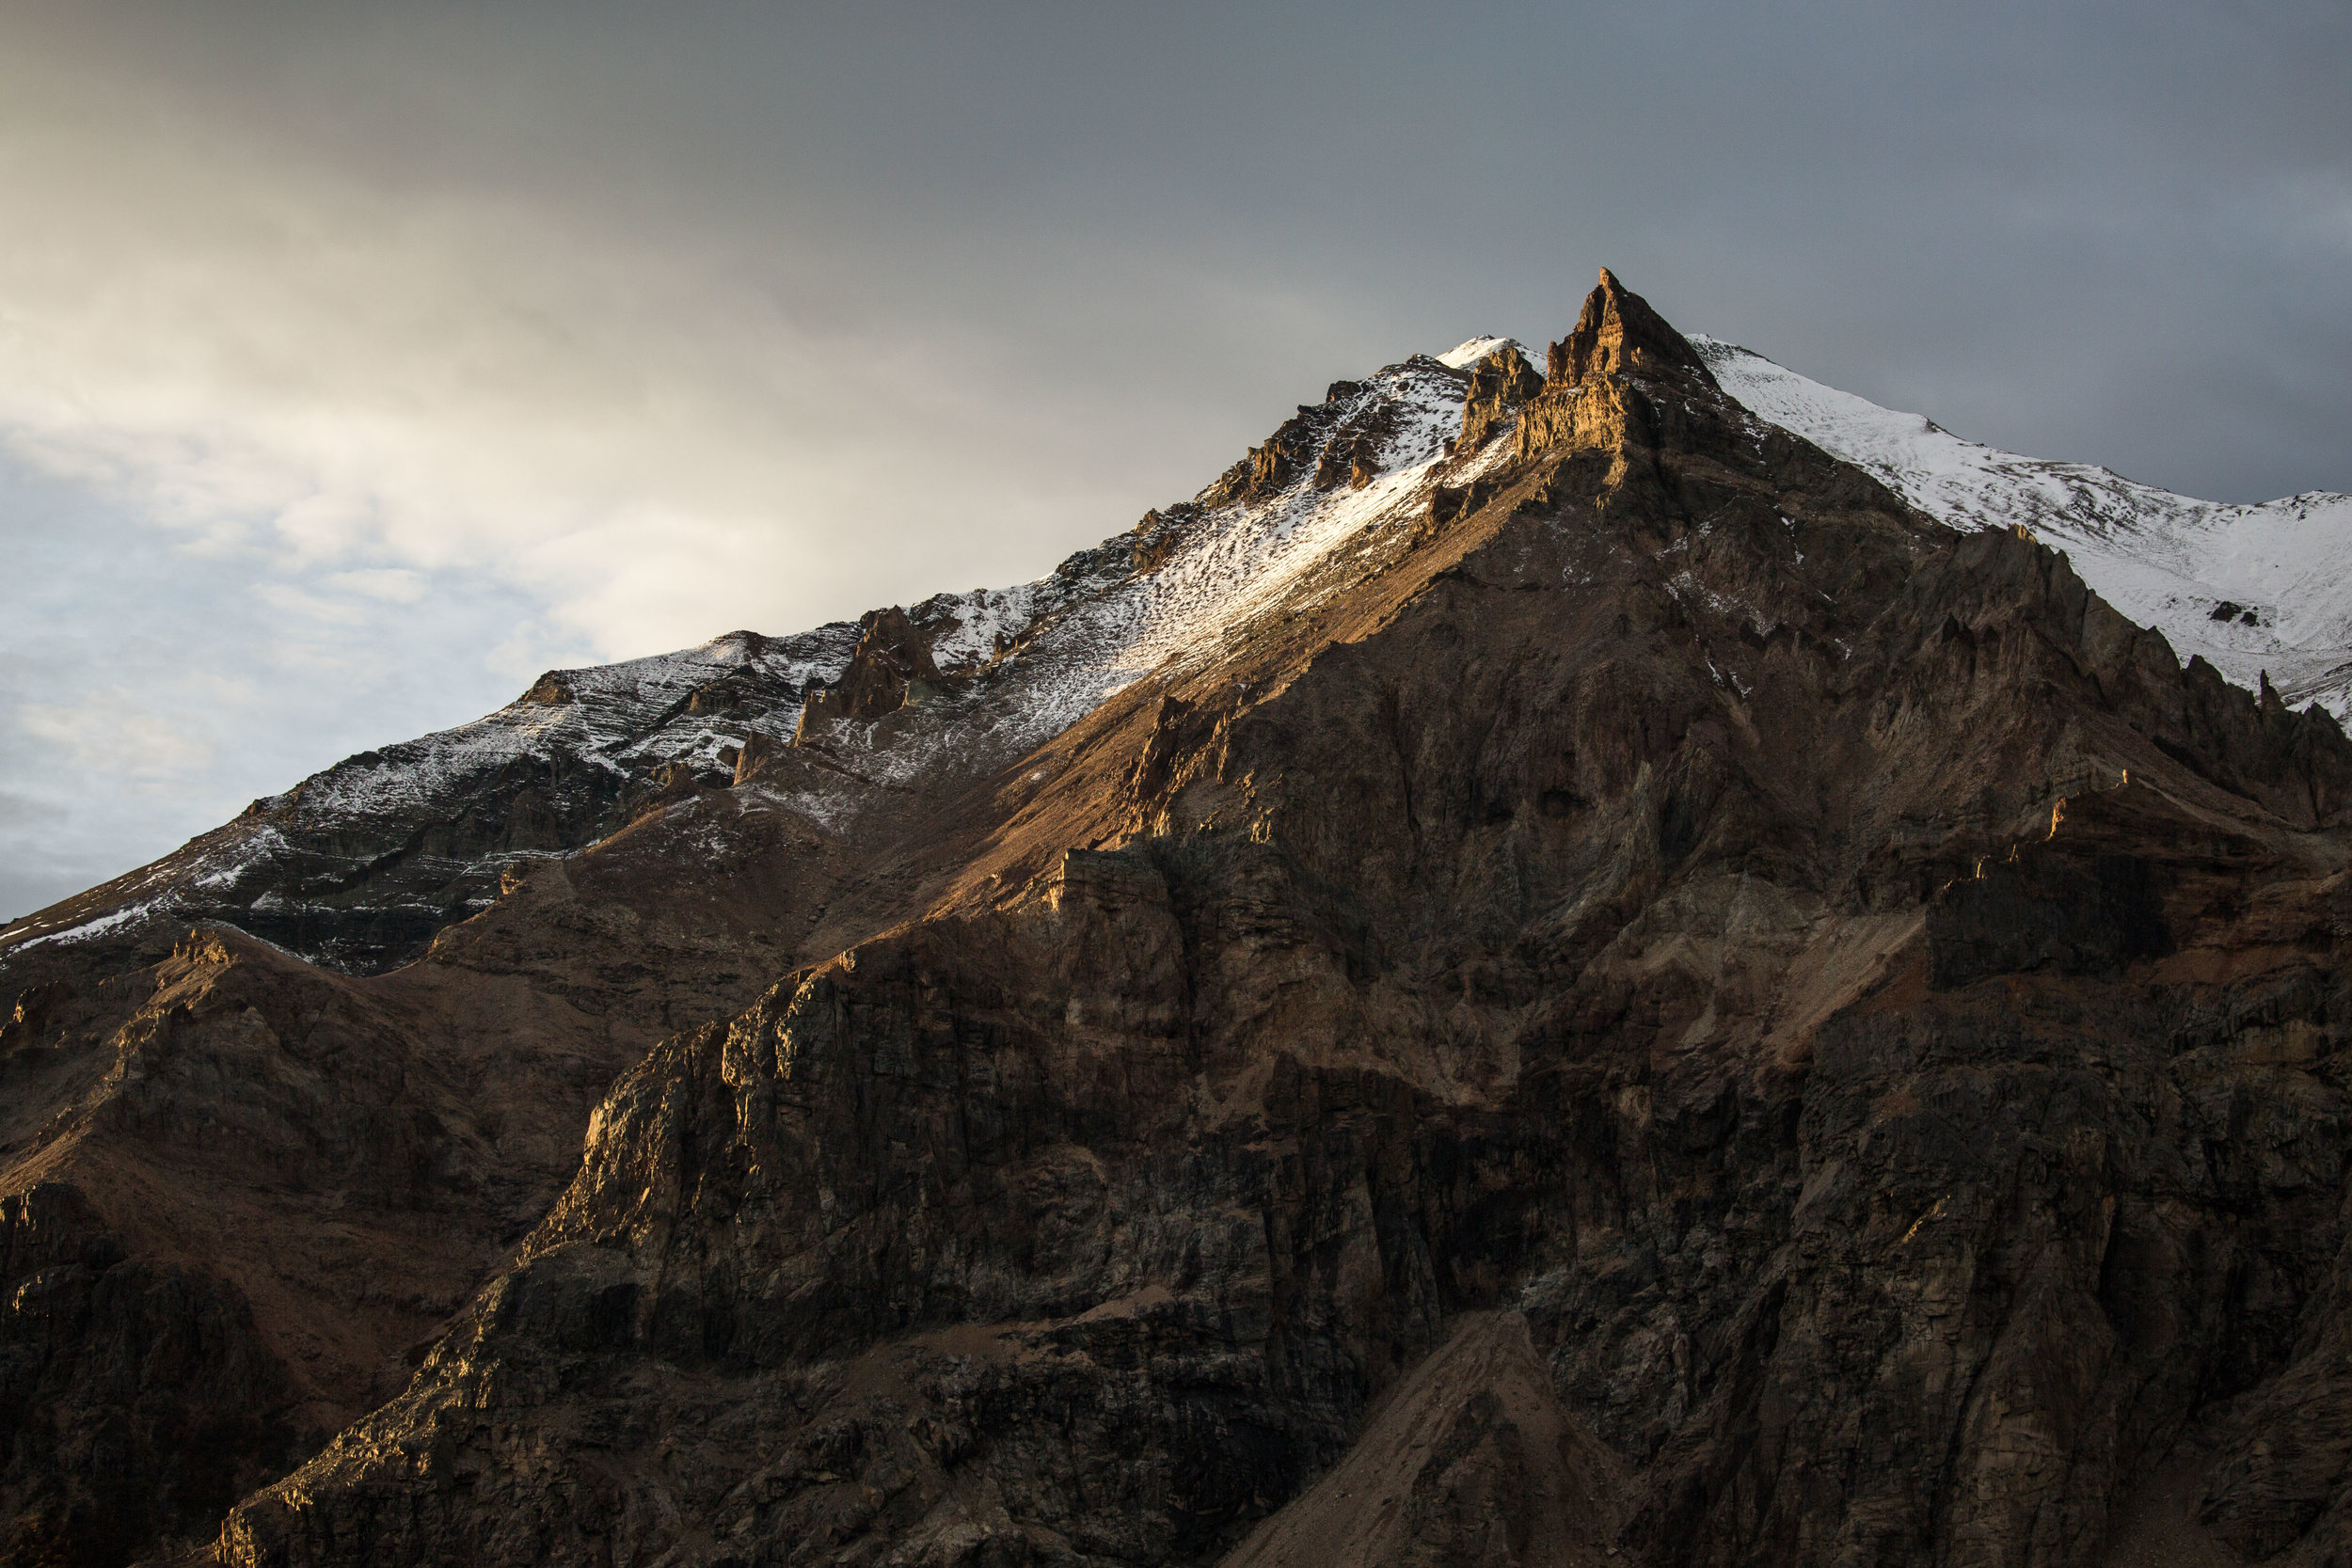 Peak in the Jeinimeni National Reserve, now part of Patagonia National Park